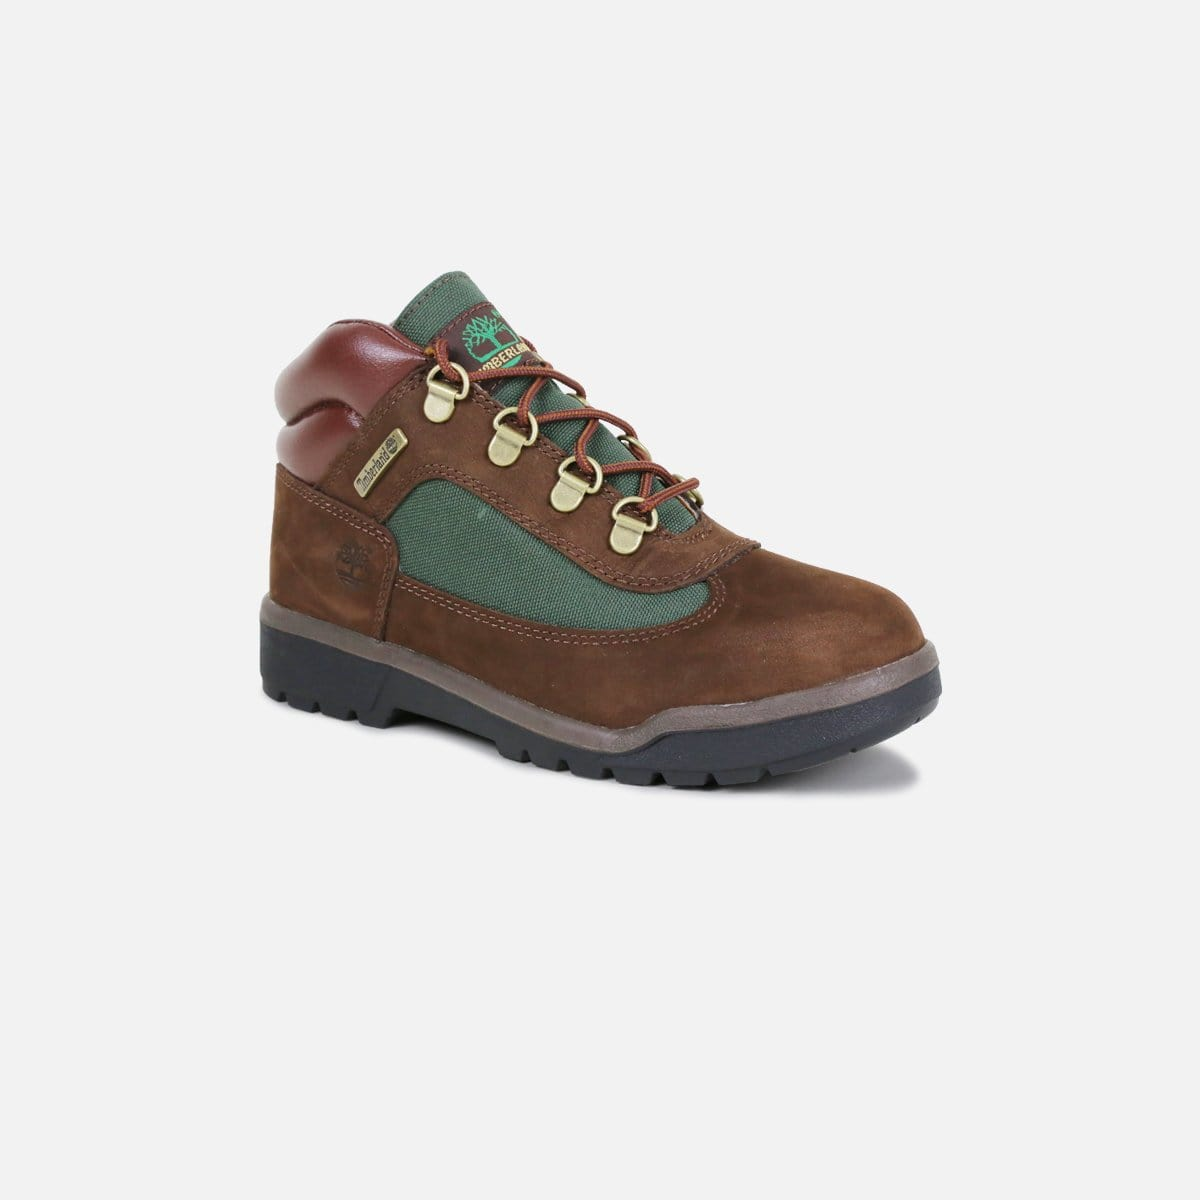 Timberland Field Boot Pre-School (Brown/Forest Green)